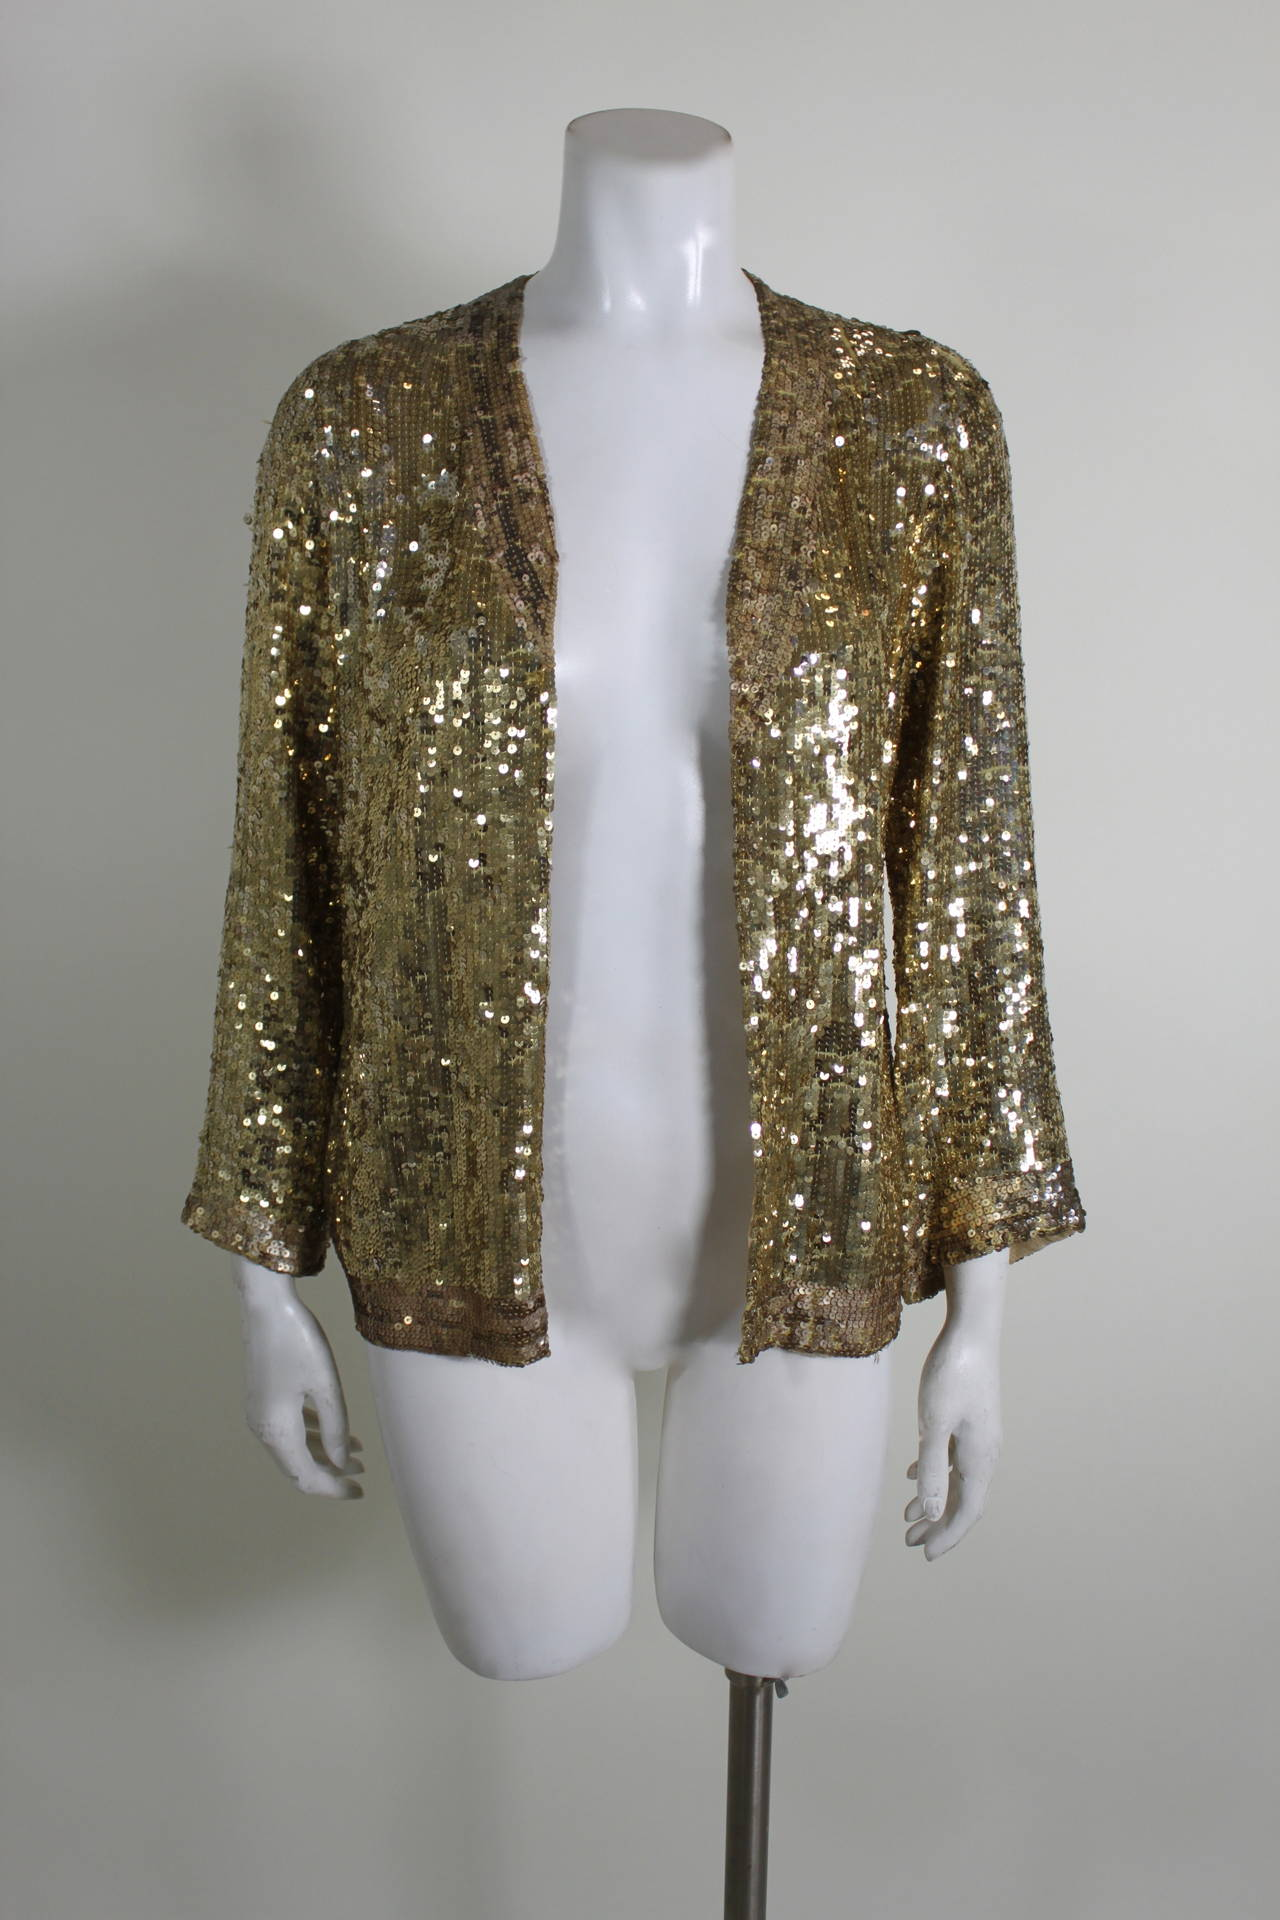 1930s Brilliant Gold Sequined Evening Jacket At 1stdibs